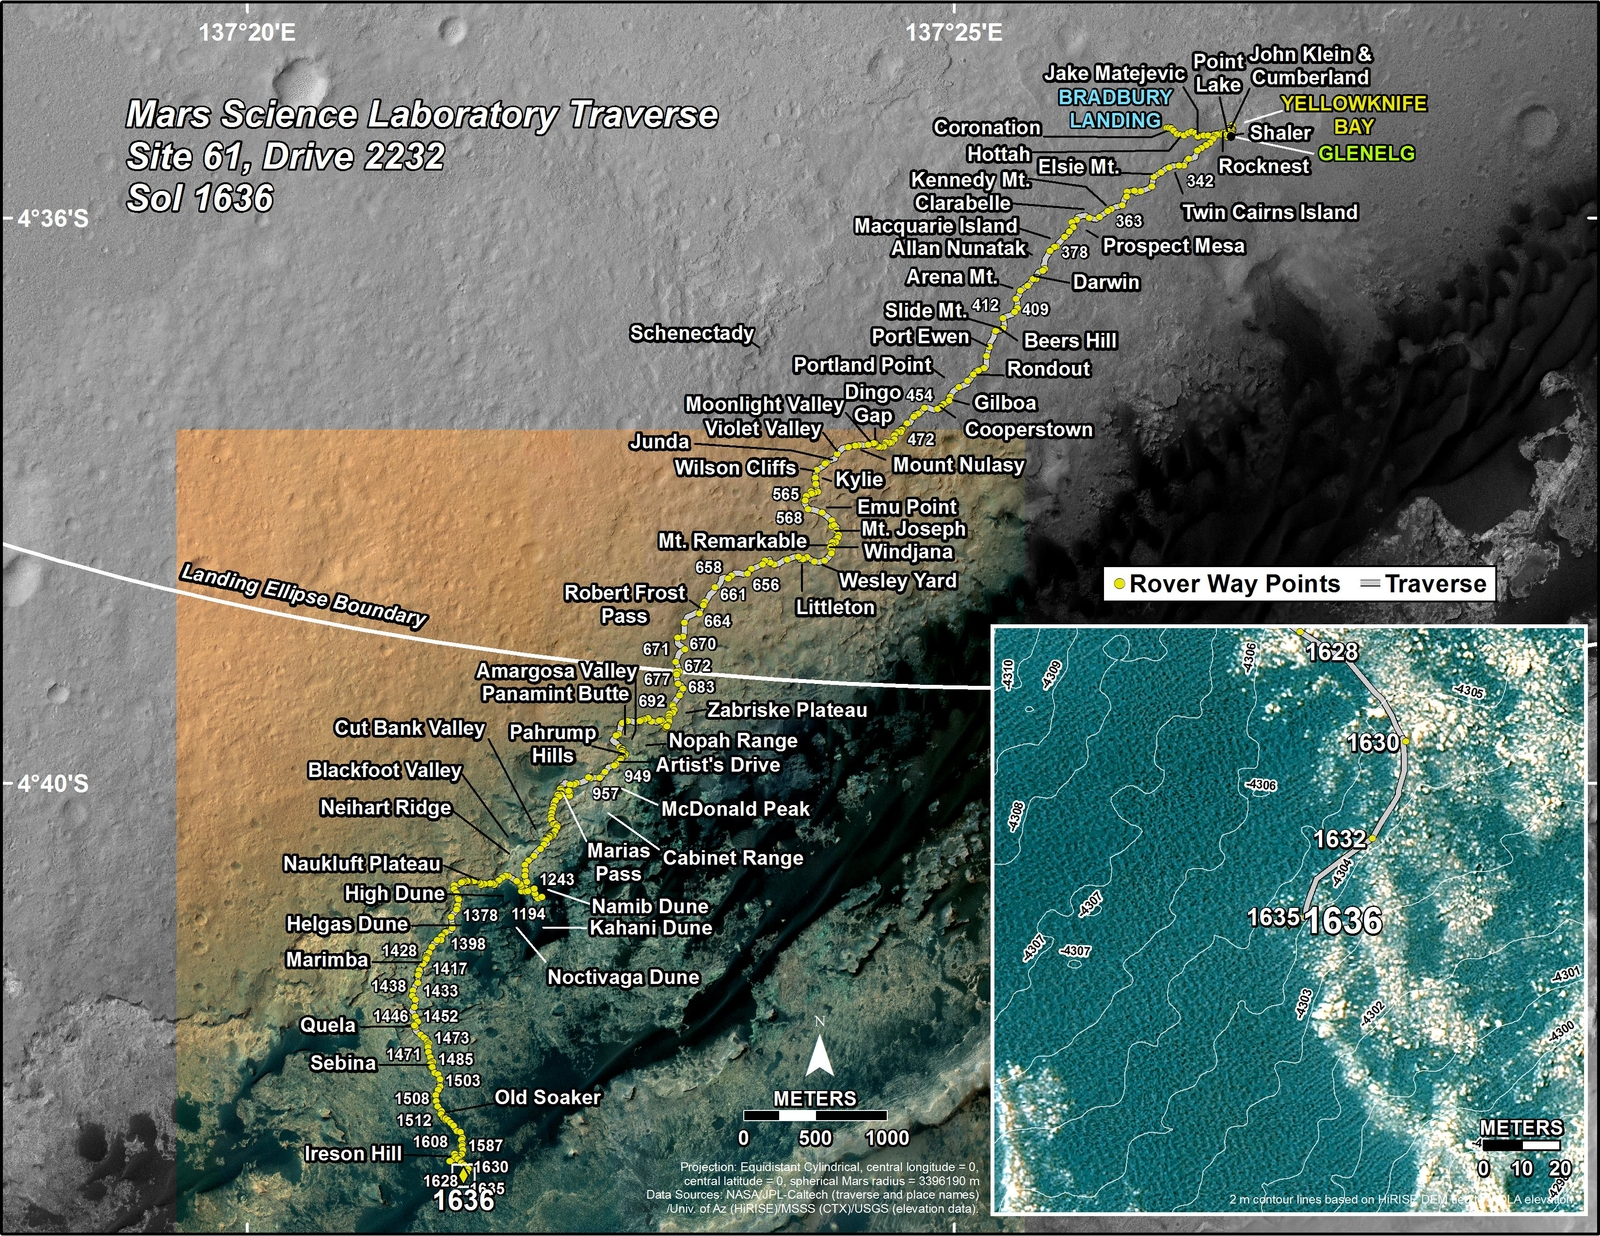 This map shows the route driven by NASA's Mars rover Curiosity through the 1636 Martian day, or sol, of the rover's mission on Mars (March 14, 2017).